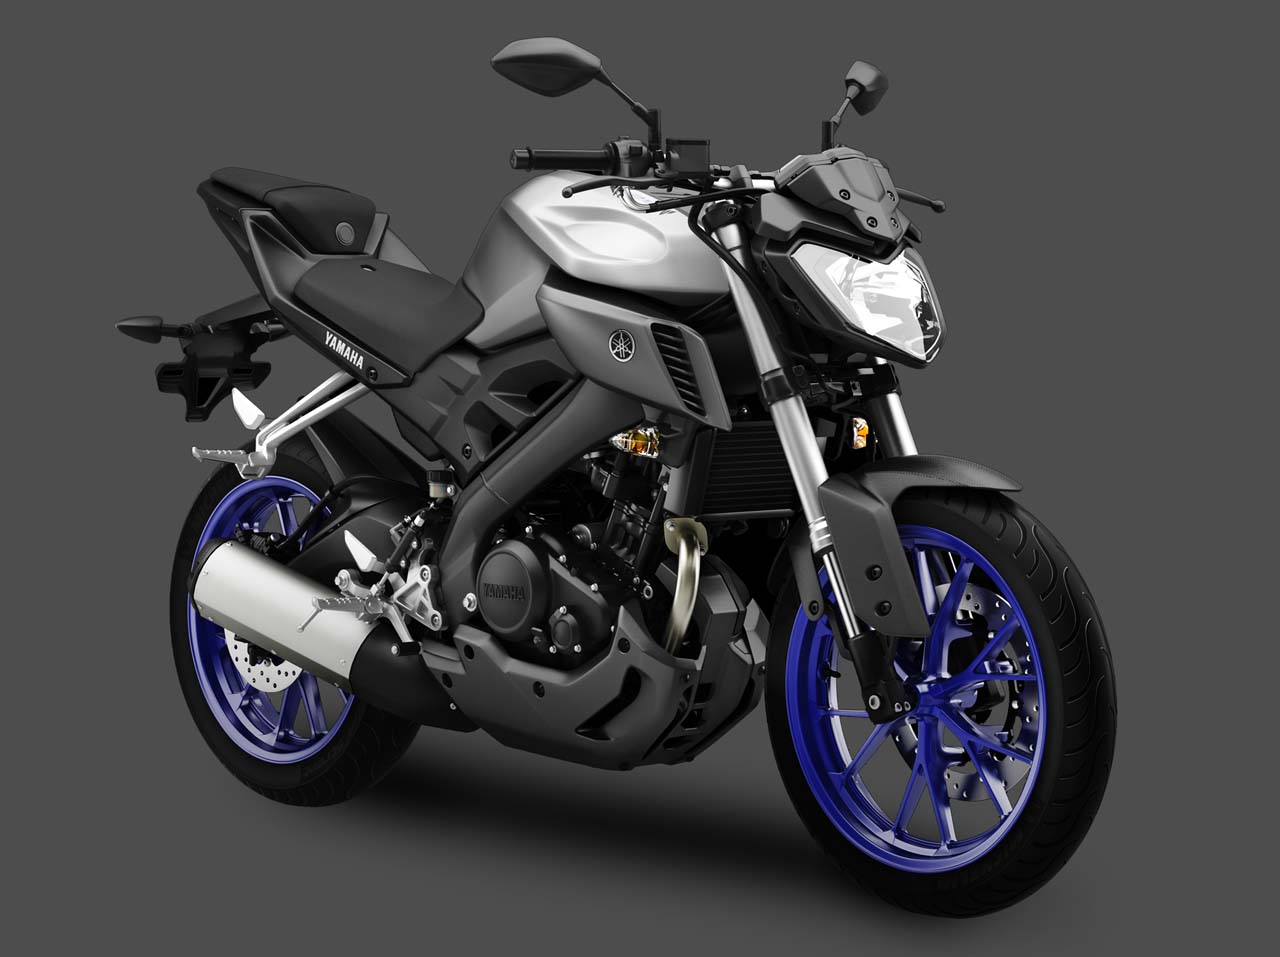 yamaha mt 125 little bike offers big style motorcycles diseno art. Black Bedroom Furniture Sets. Home Design Ideas